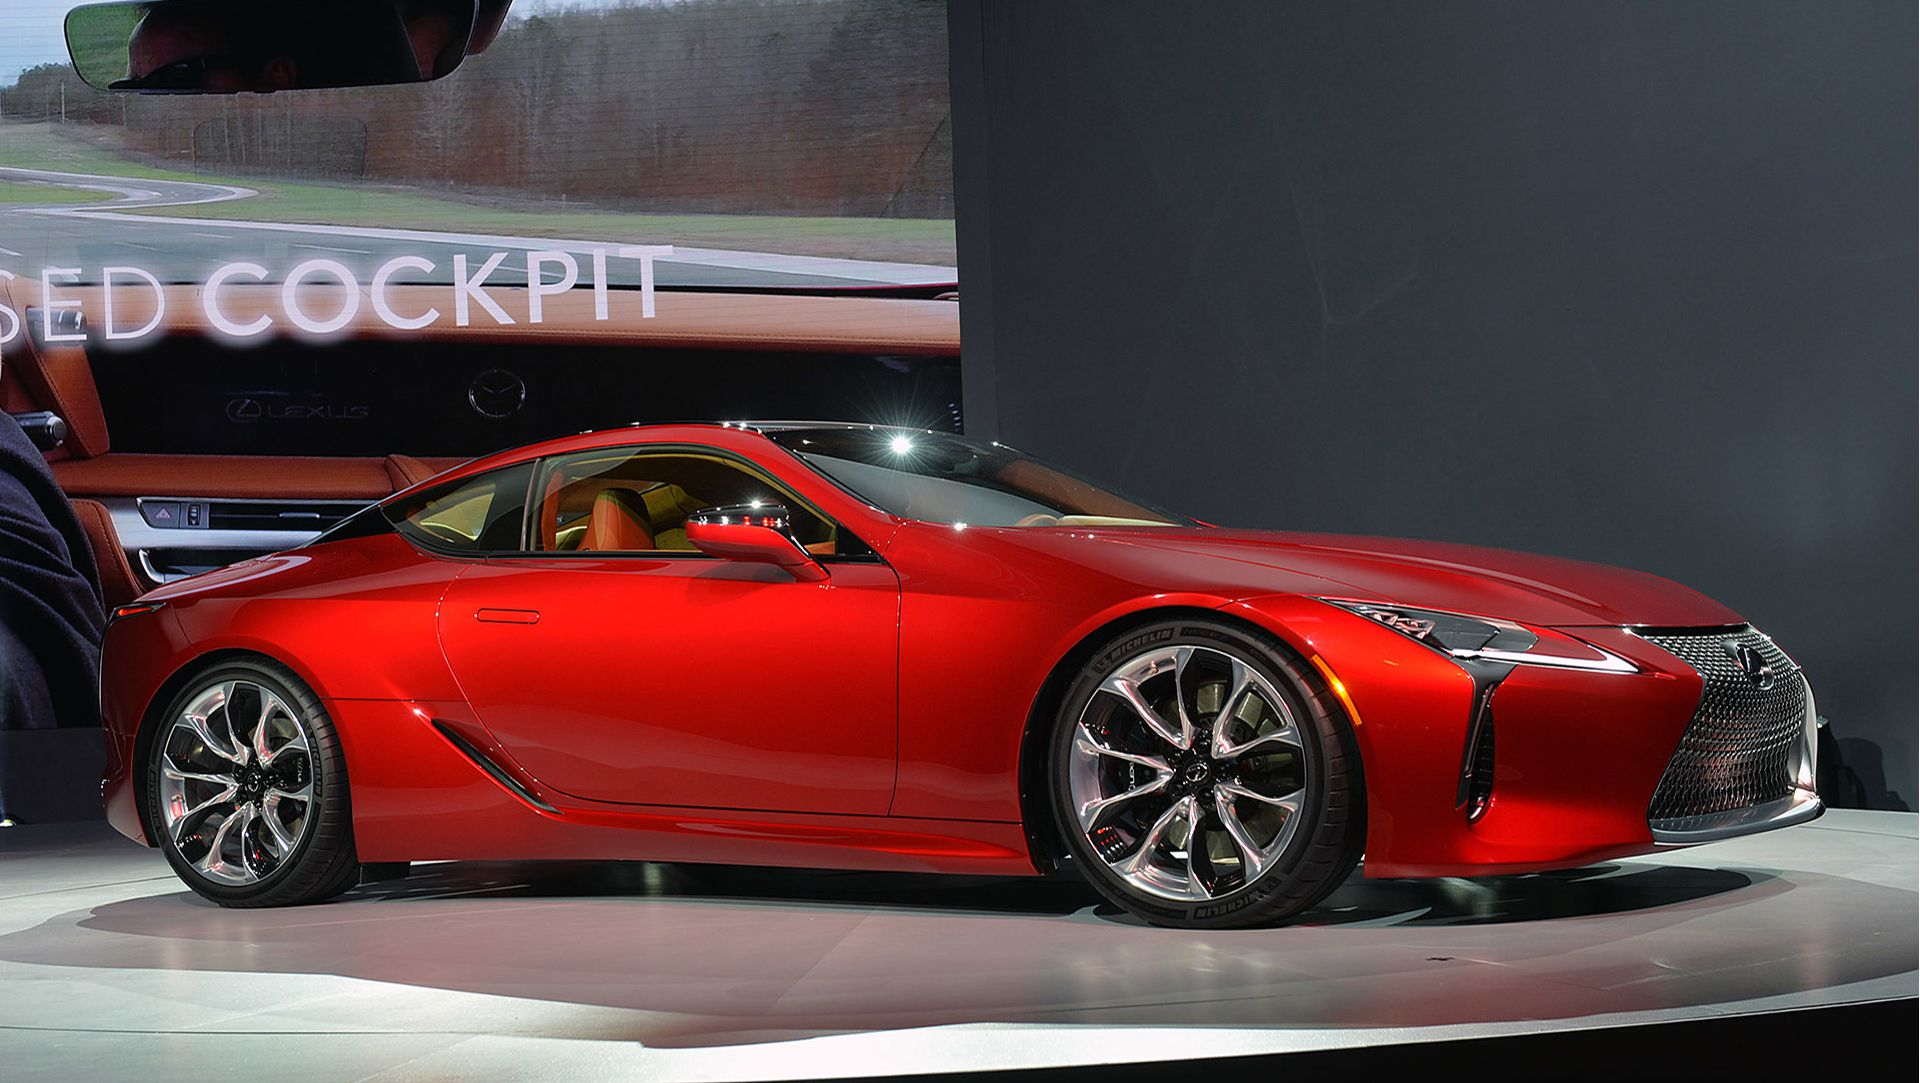 Best Production Car Award At Detroit Auto Show Goes To Lexus - Best sports coupe 2016